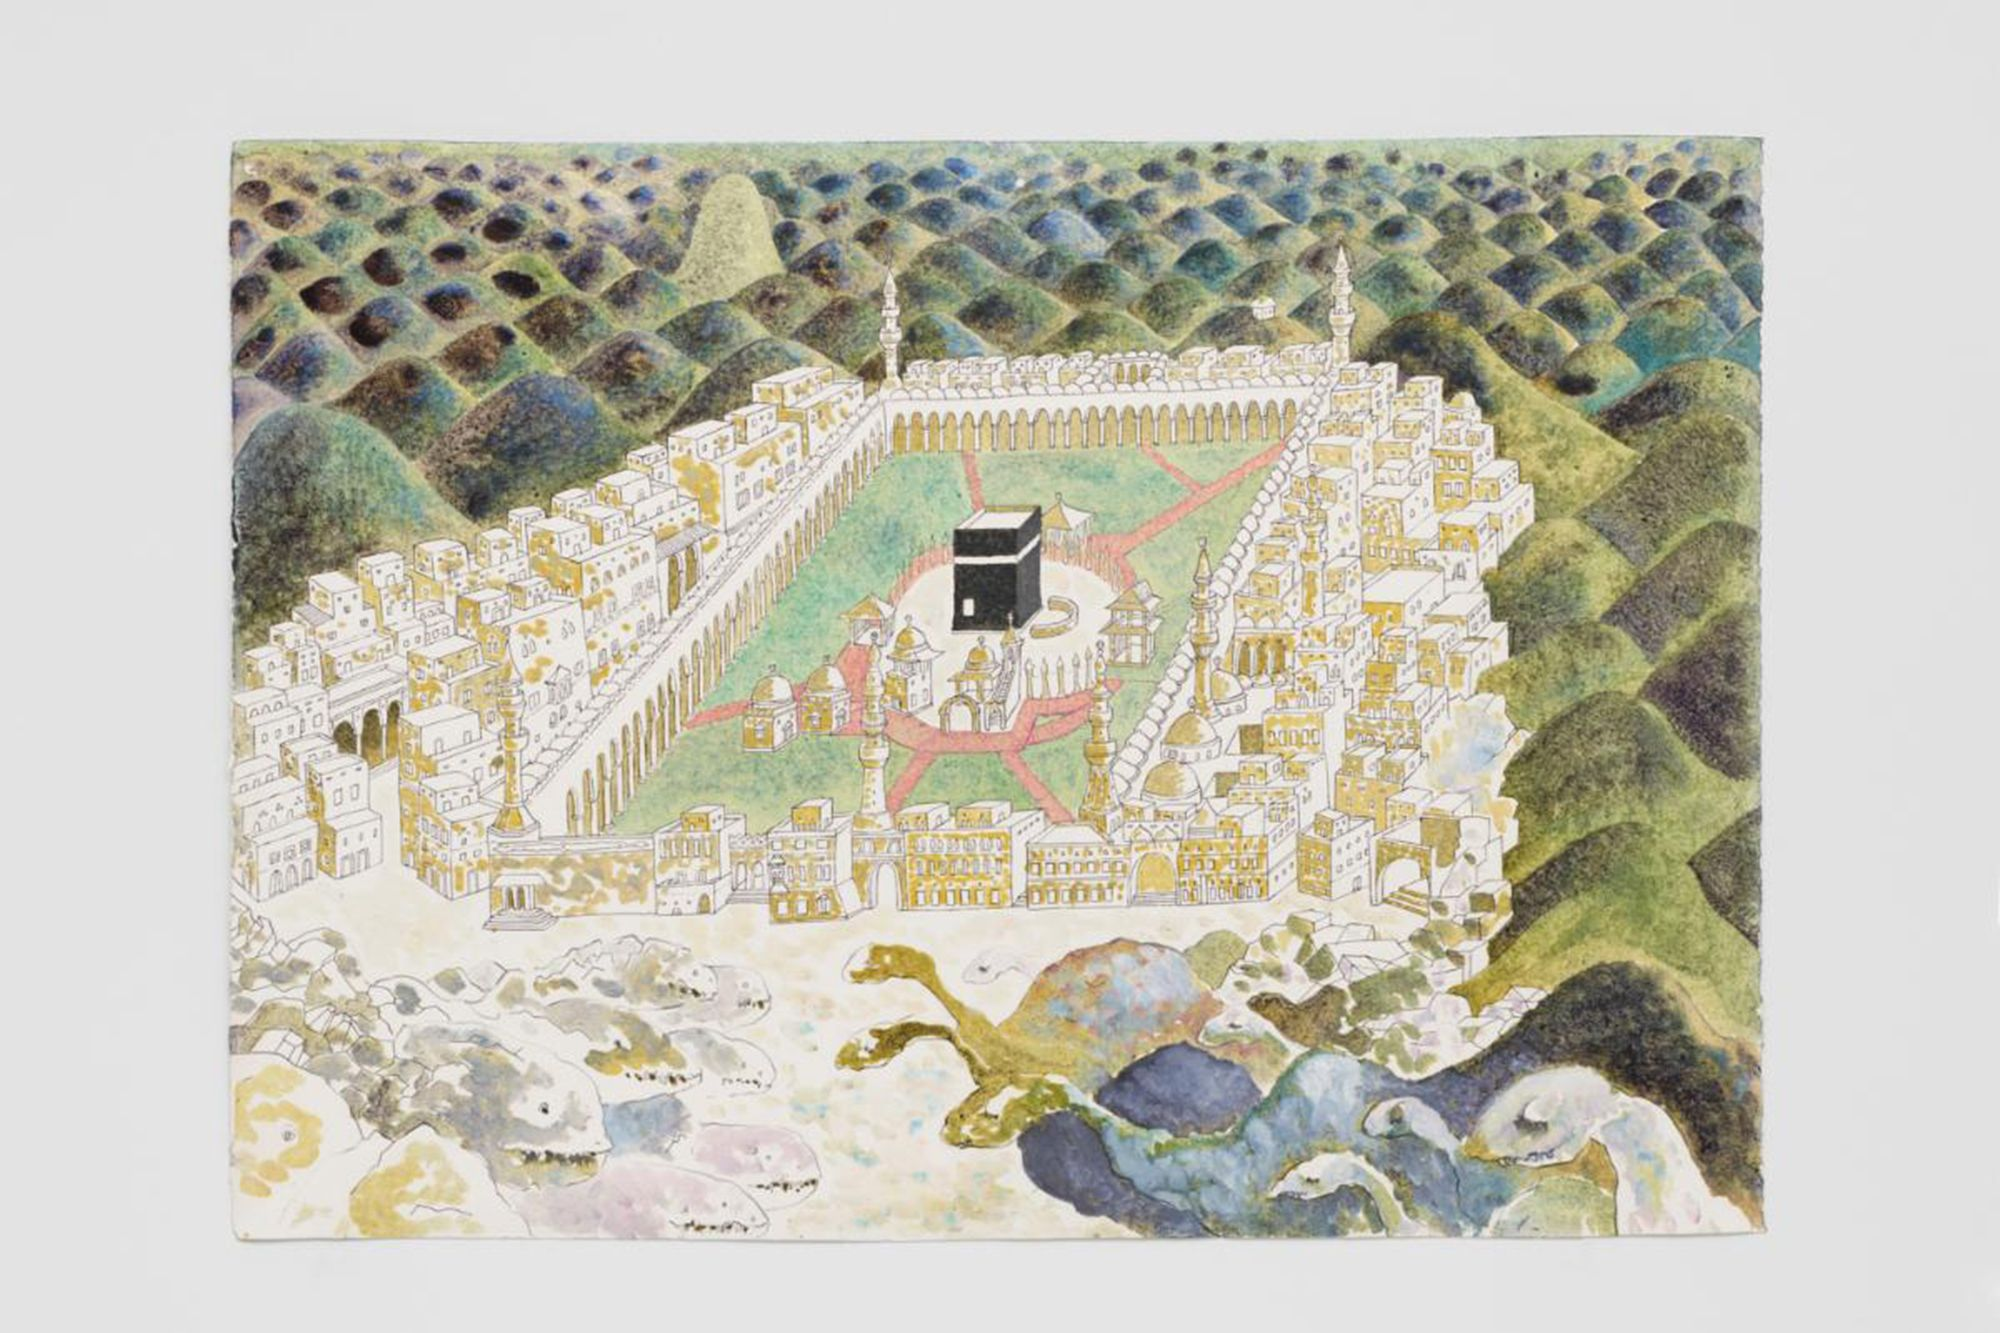 Wael Shawky, (Egyptian, b.1971), The Gulf Project Camp: Drawing #1, 2019, Graphite, ink, oil mixed media on cotton paper, The Alfond Collection of Contemporary Art at Rollins College, Gift of Barbara '68 and Theodore '68 Alfond. 2019.2.11.